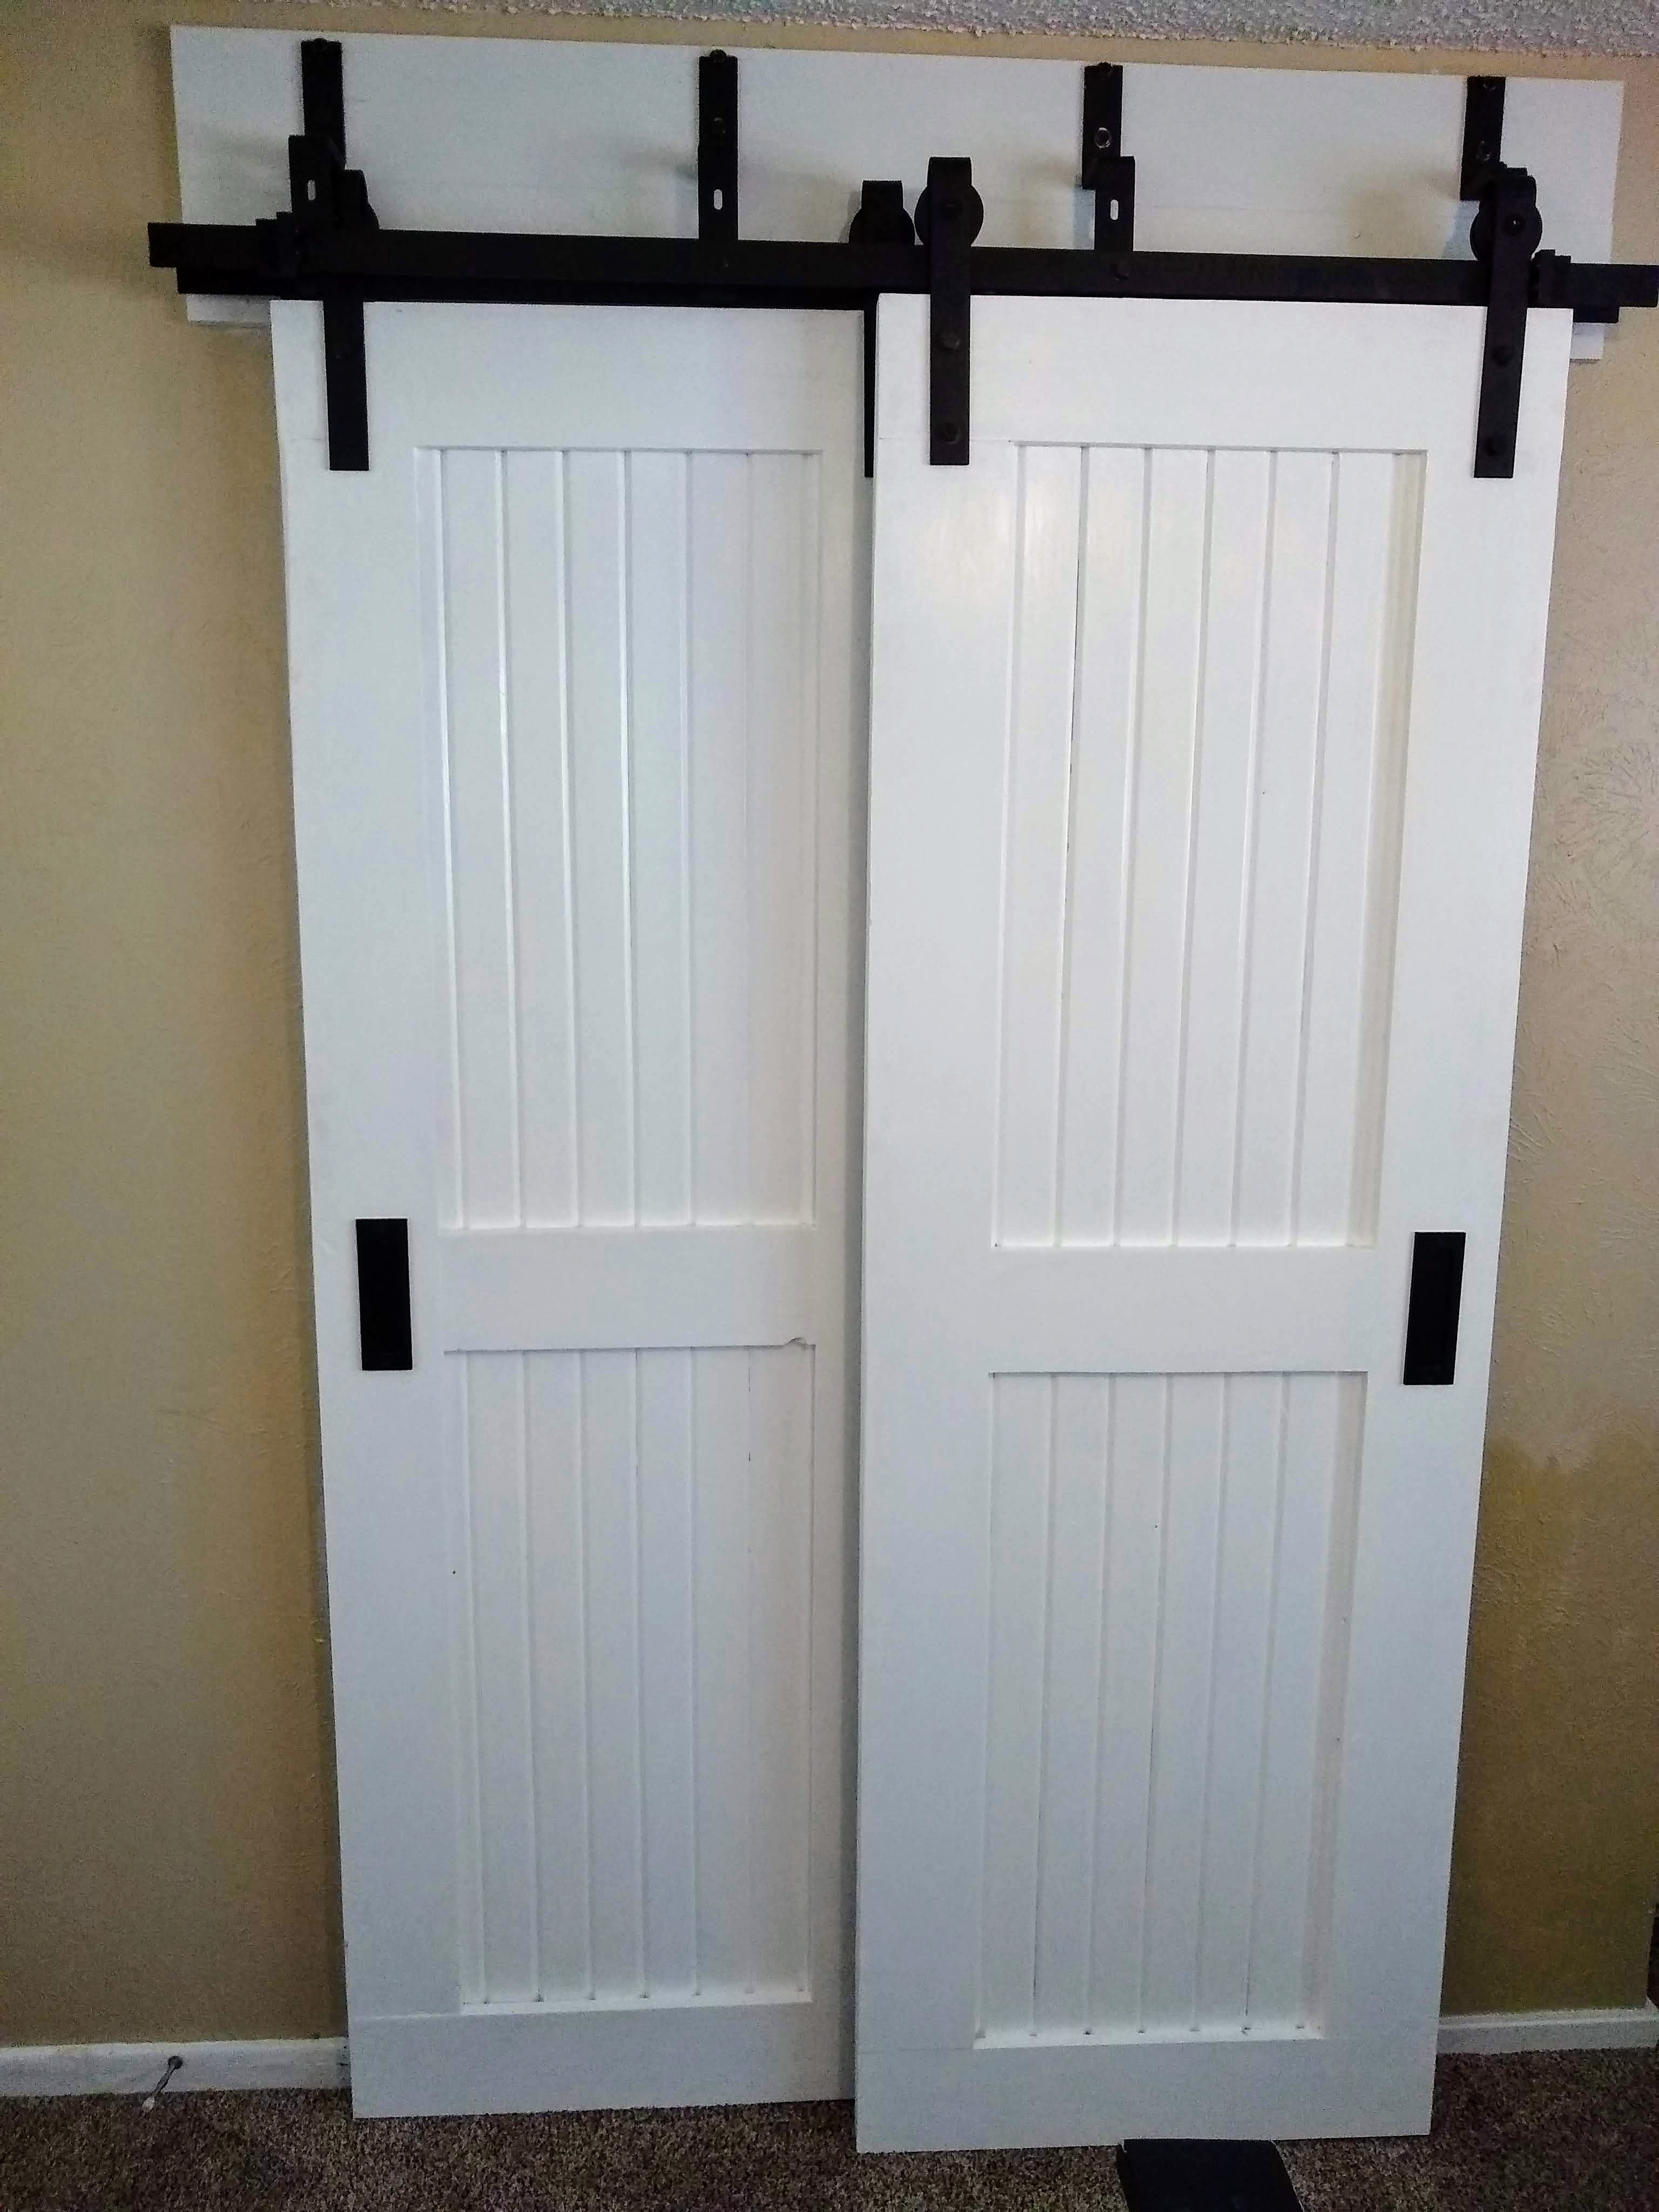 Bypass barn doors